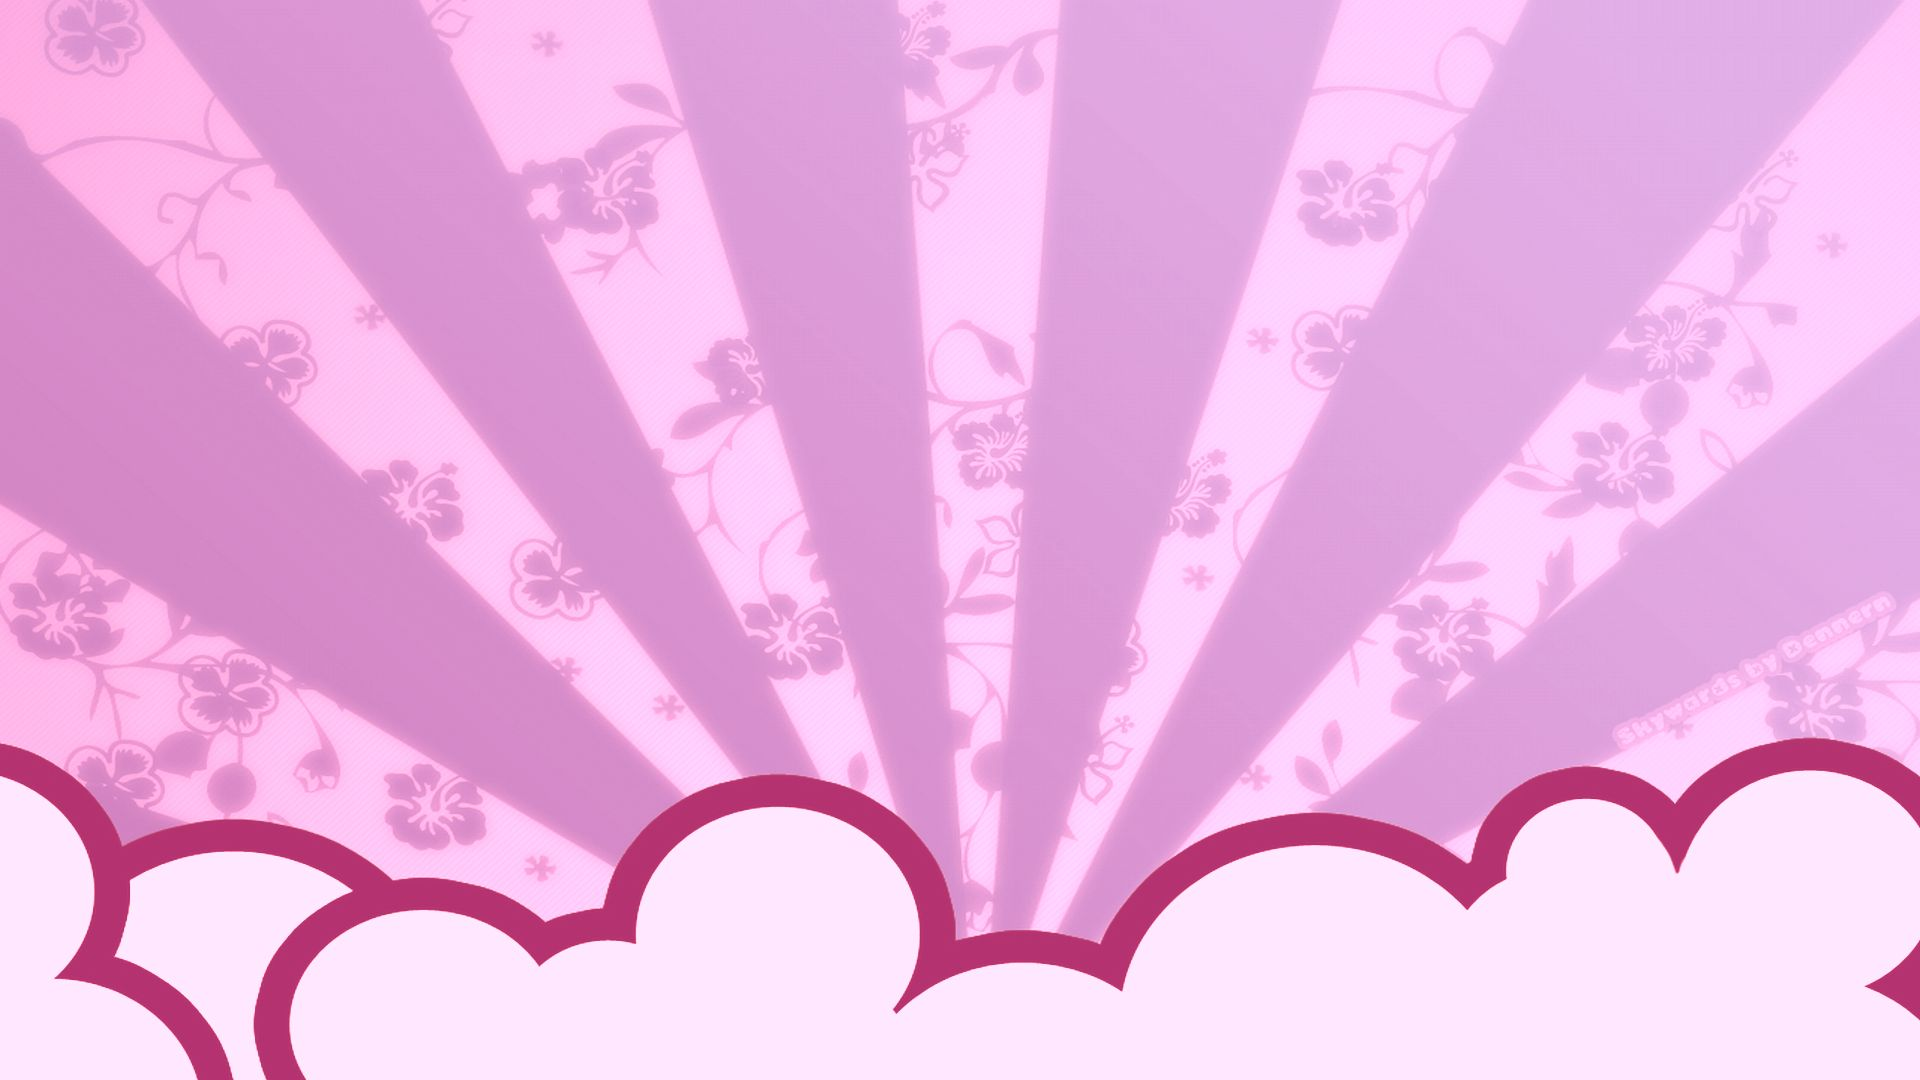 Light Pink Wallpapers Free Download | PixelsTalk Net